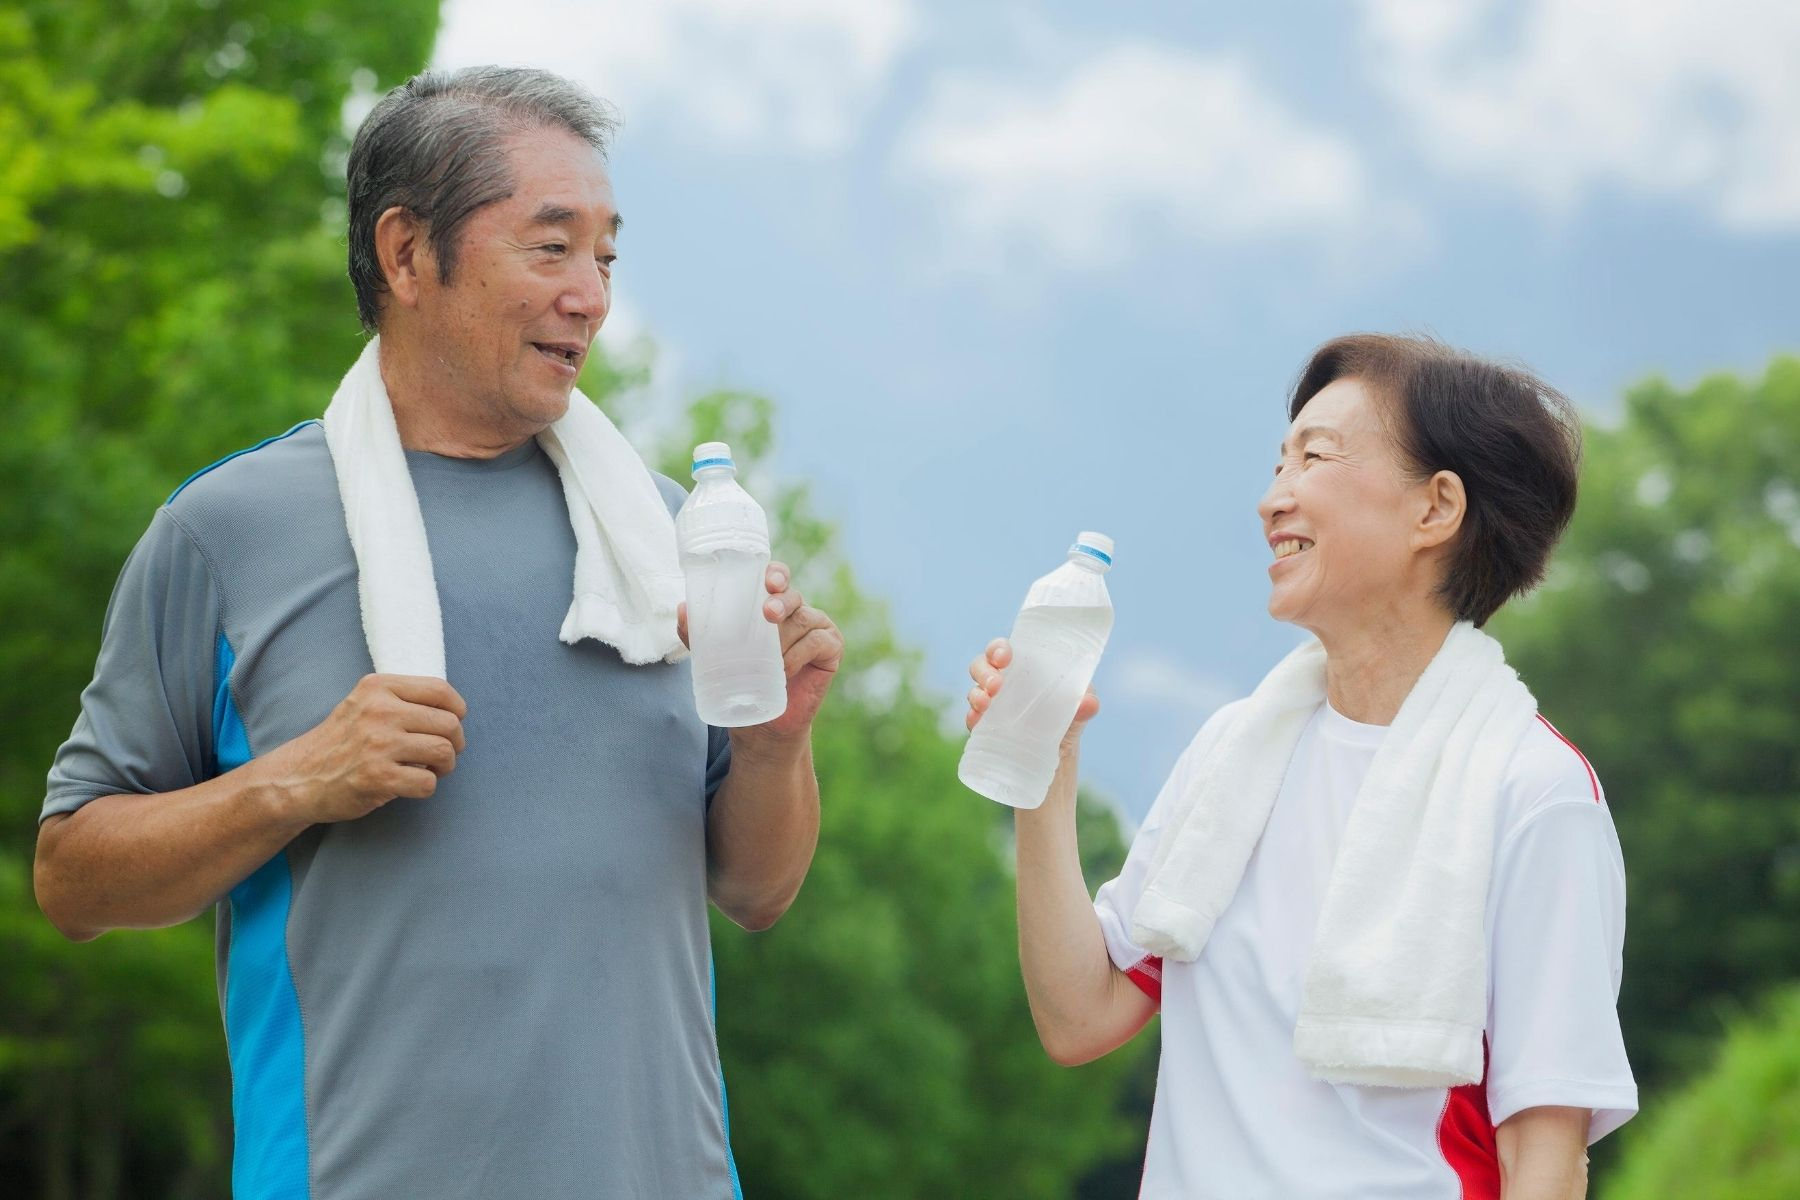 HappyFresh_Boost_Immunity_In_Elderly_To_Prevent_Covid_Staying_Hydrated